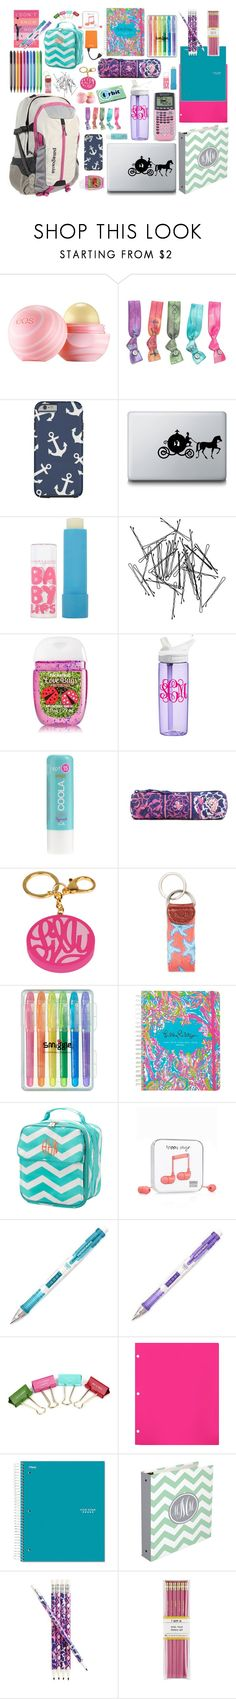 """""""My backpack"""" by kaylarm ❤ liked on Polyvore featuring Patagonia, Eos, Pura Vida, Disney, Edition, Maybelline, Monki, CamelBak, J.Crew and Vera Bradley"""